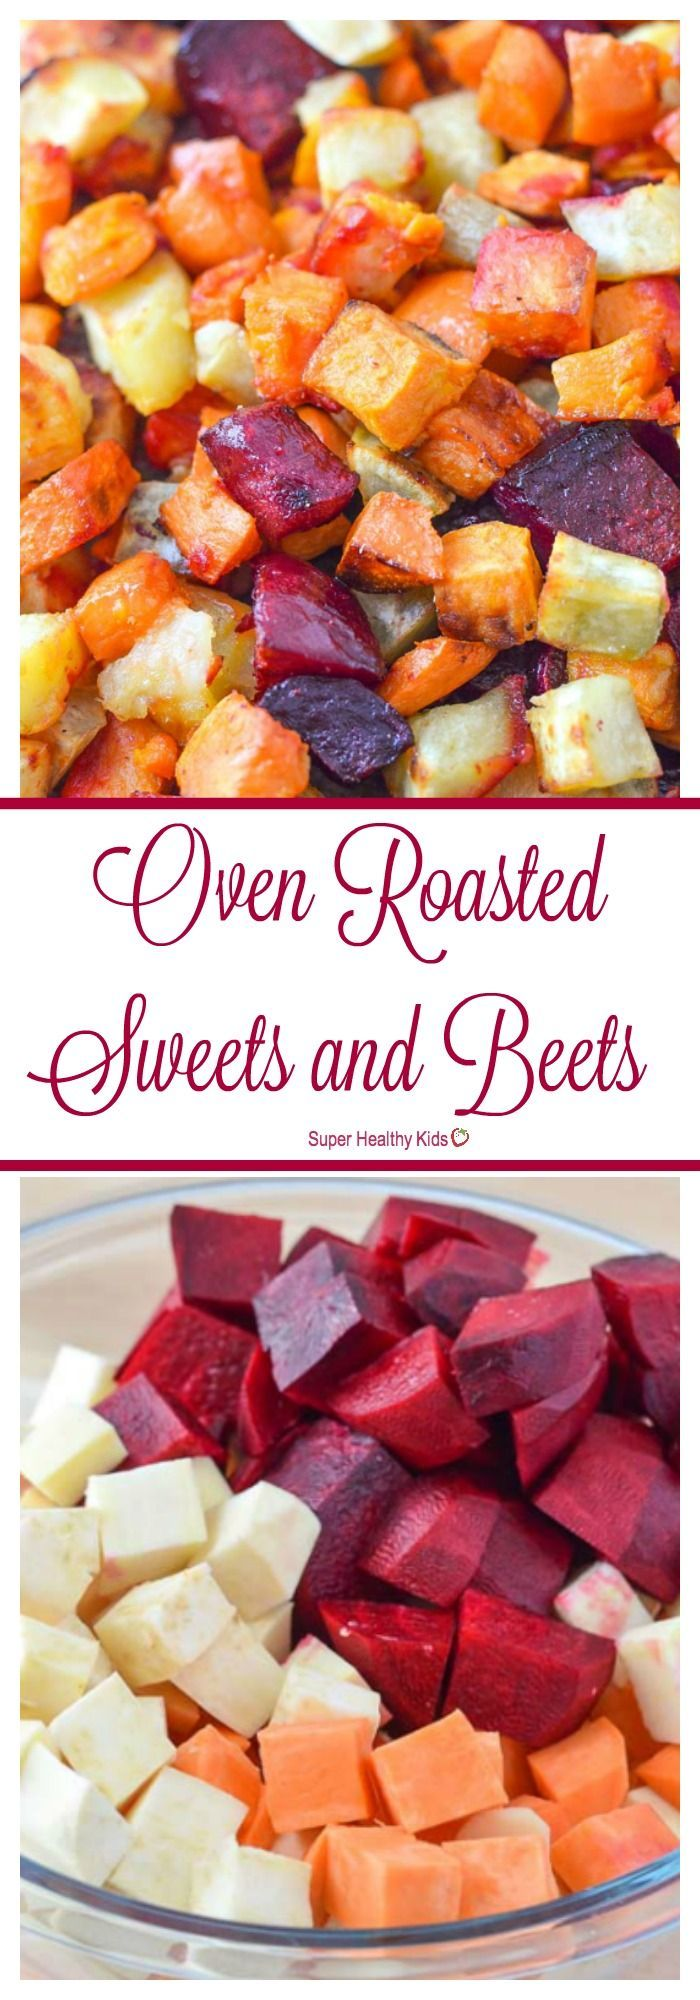 FOOD - Oven Roasted Sweets and Beets. A beautiful veggie side dish for your next dinner! http://www.superhealthykids.com/oven-roasted-sweets-beets/